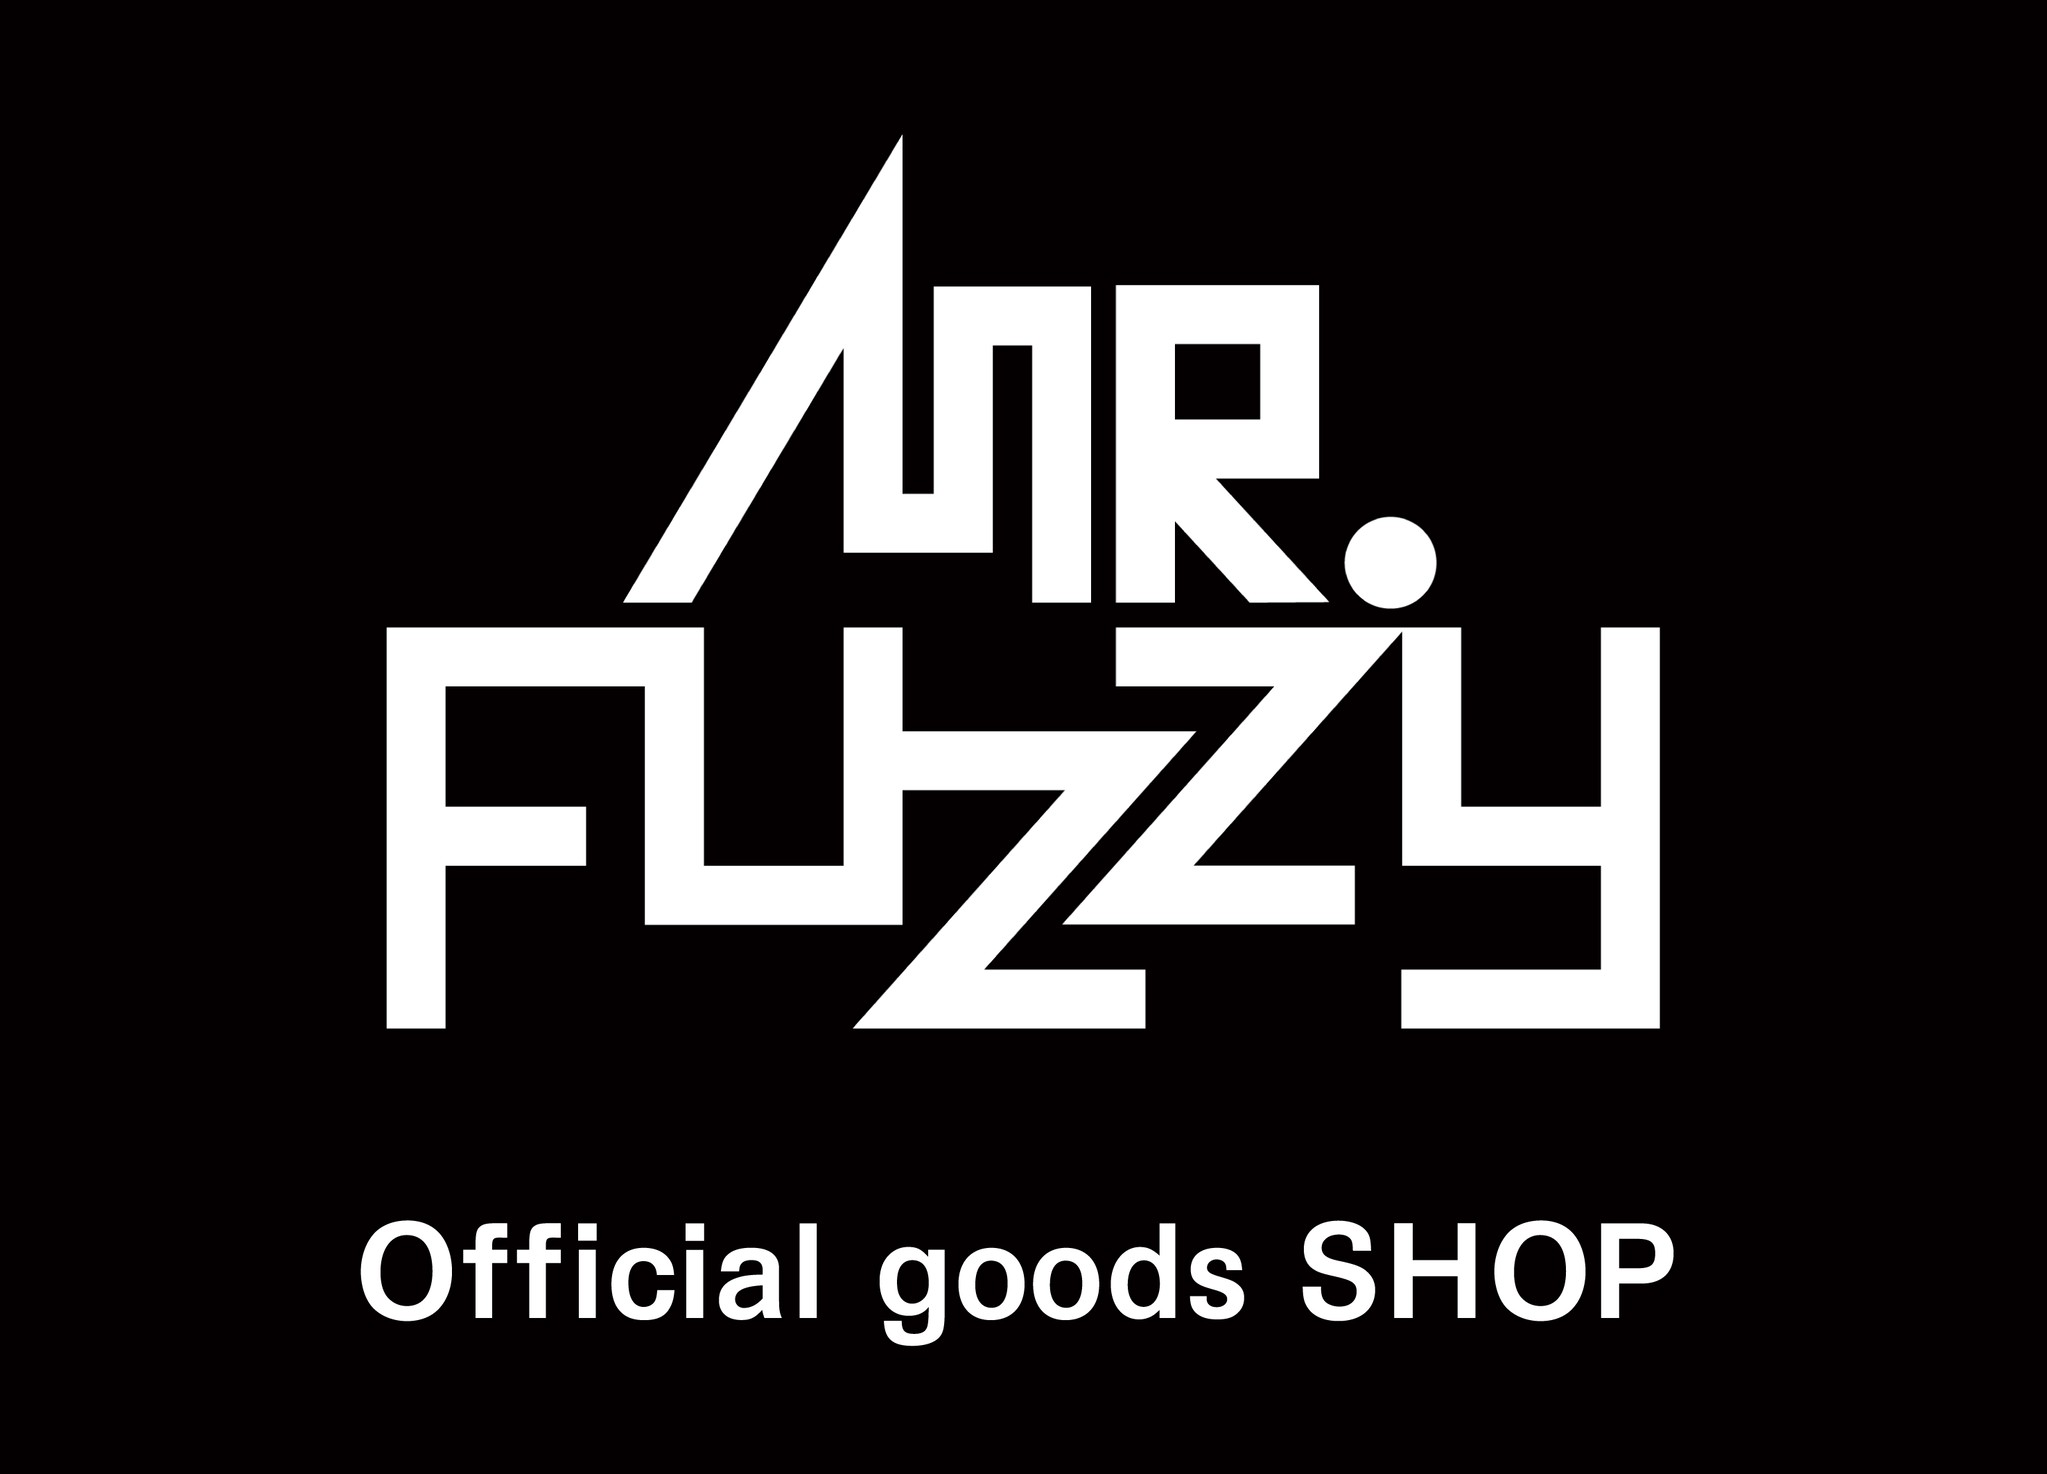 MR.Fuzzy Goods SHOP